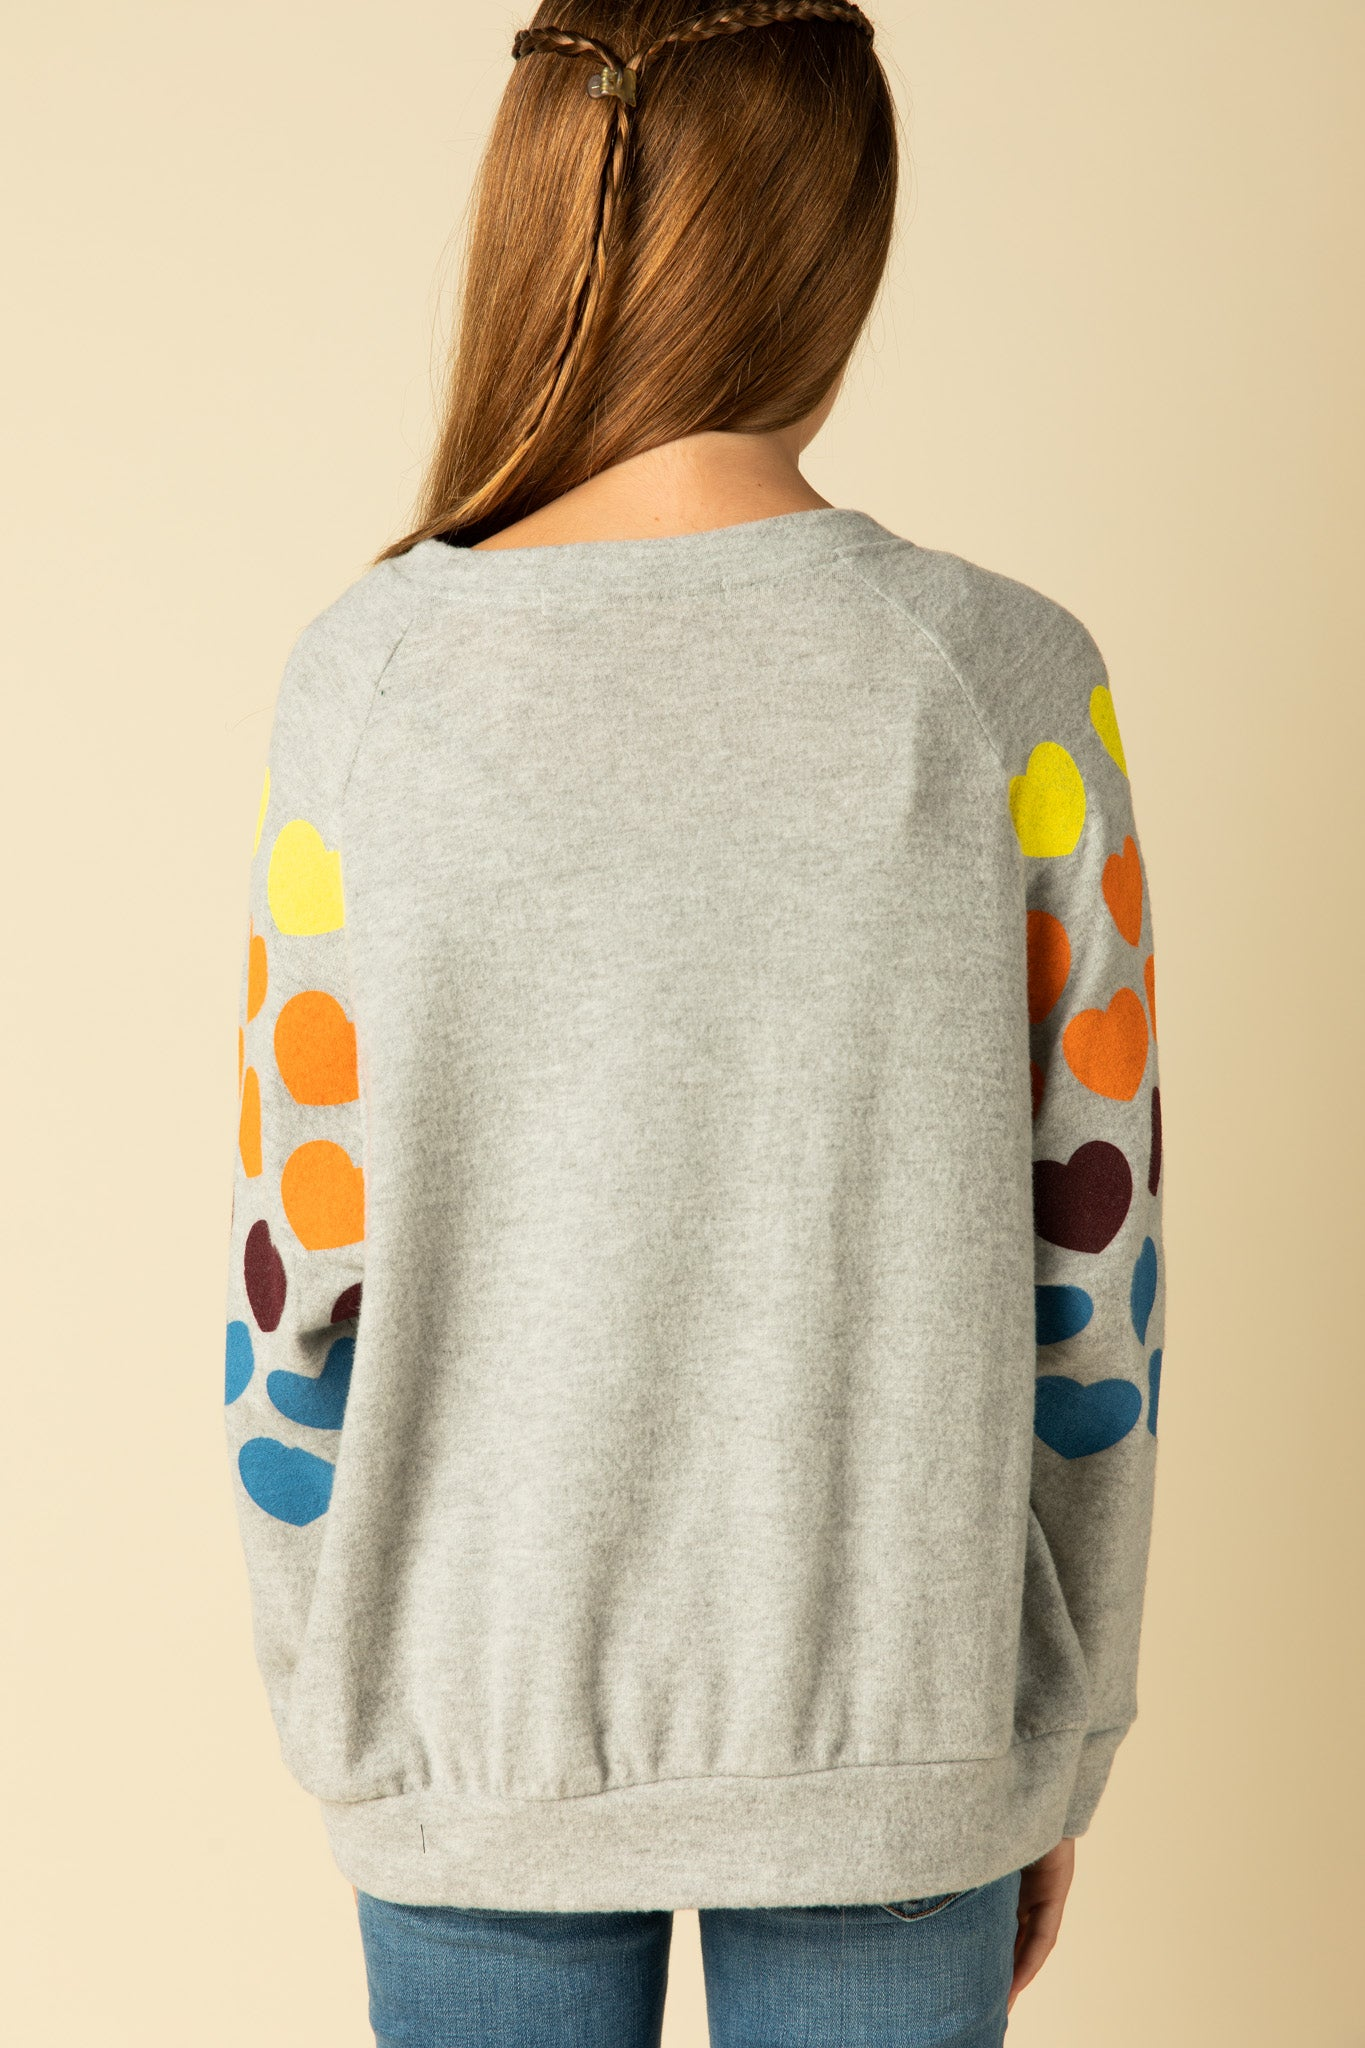 MULTI HEART BRUSHED FLEECE CREWNECK